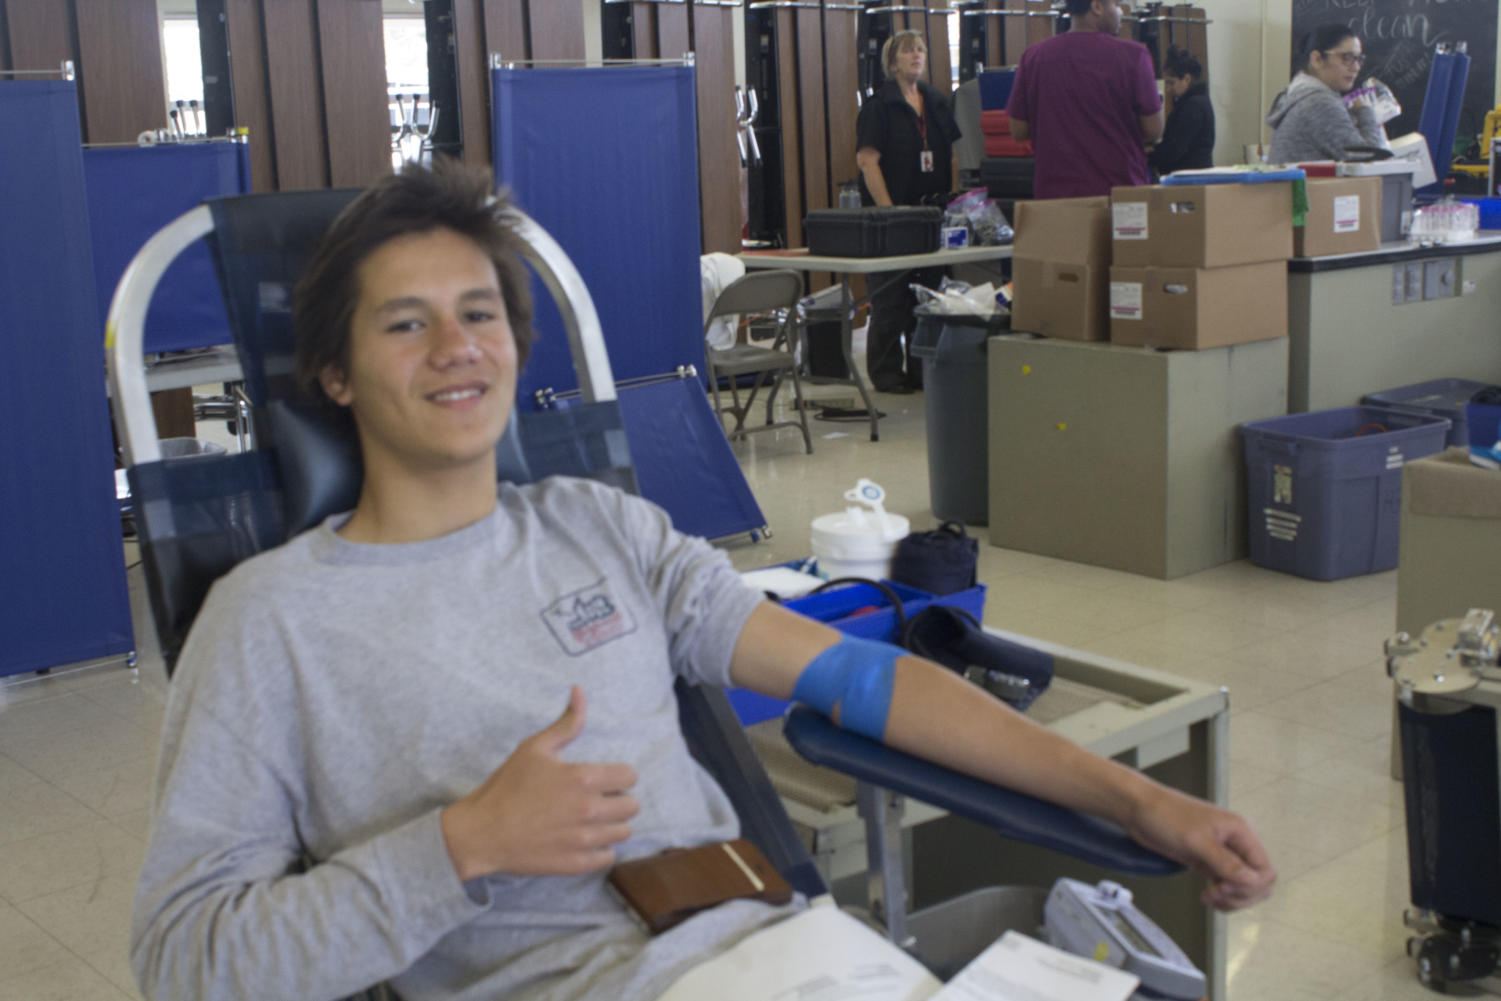 Jacob Curren donating blood at Cam High's bi-annual blood drive. Photo by Shaeley Hicks.